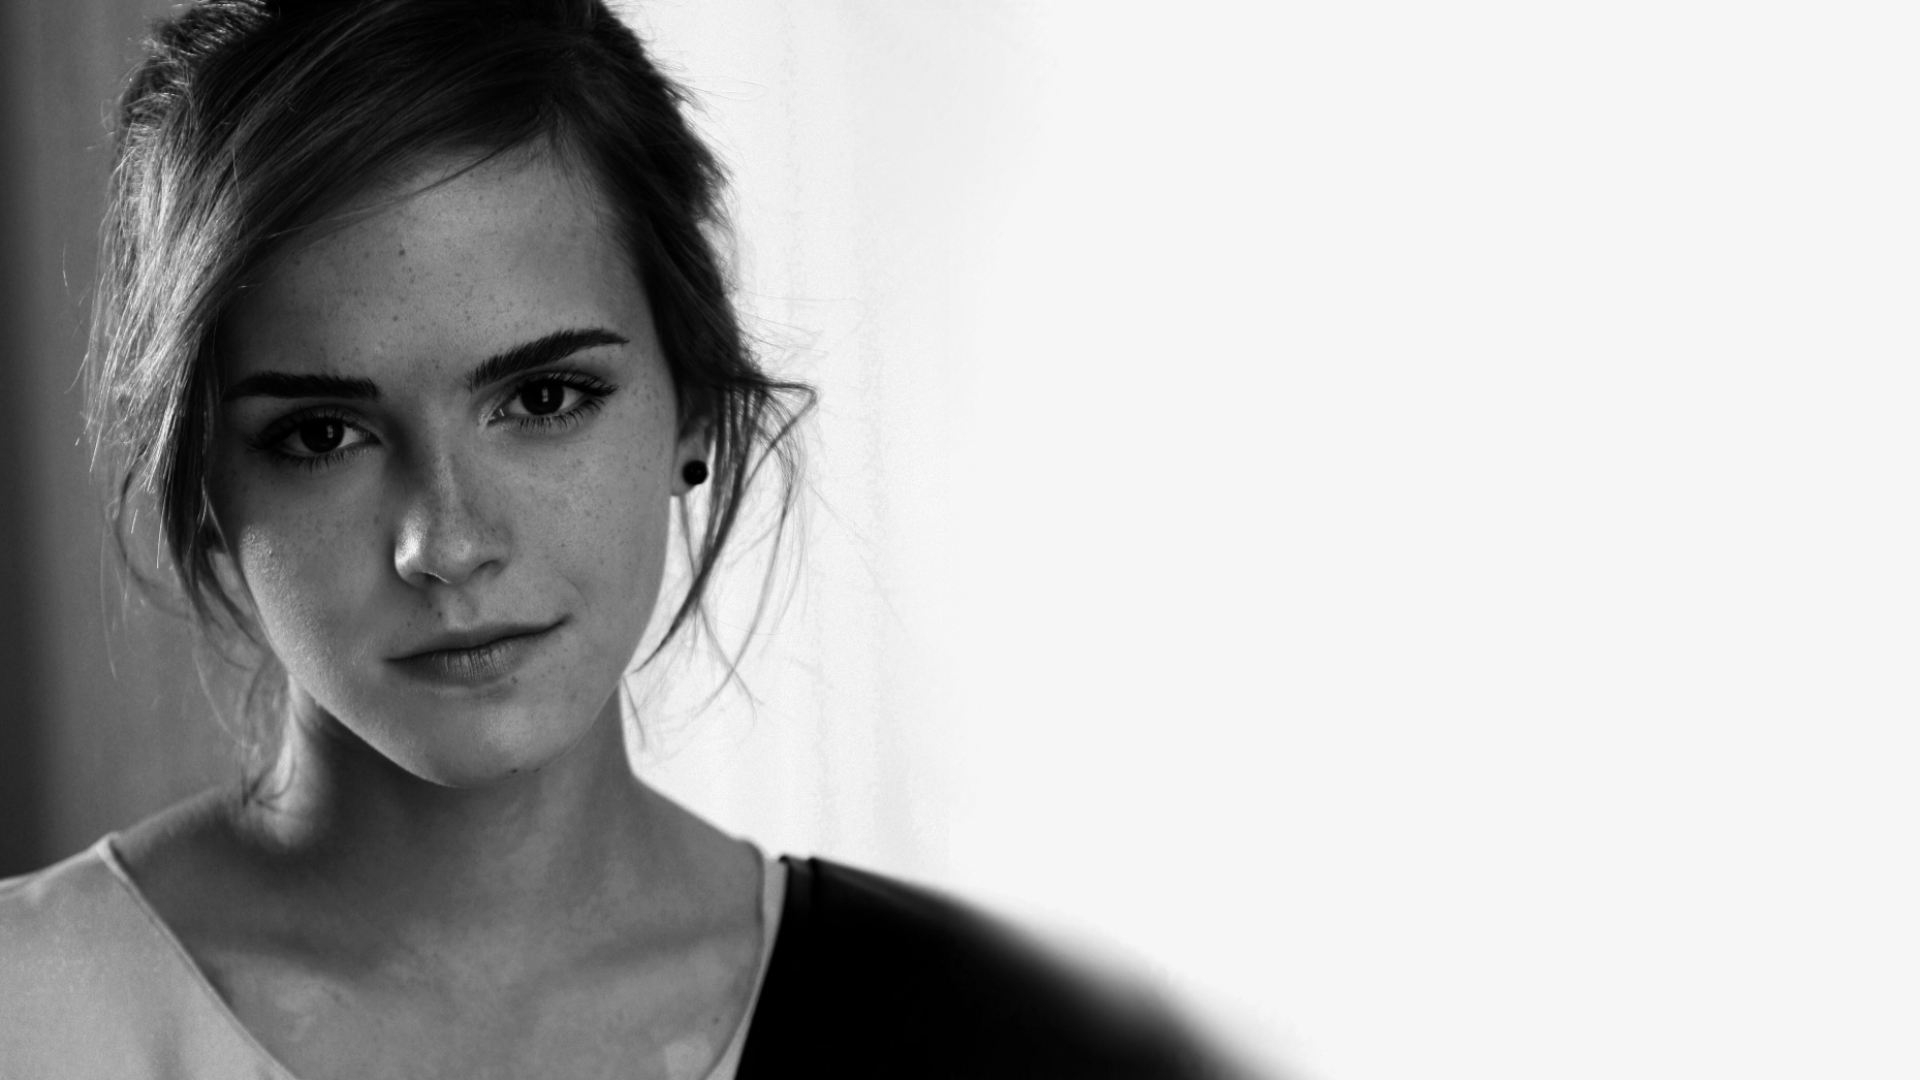 Women Emma Watson Actress HD Wallpaper